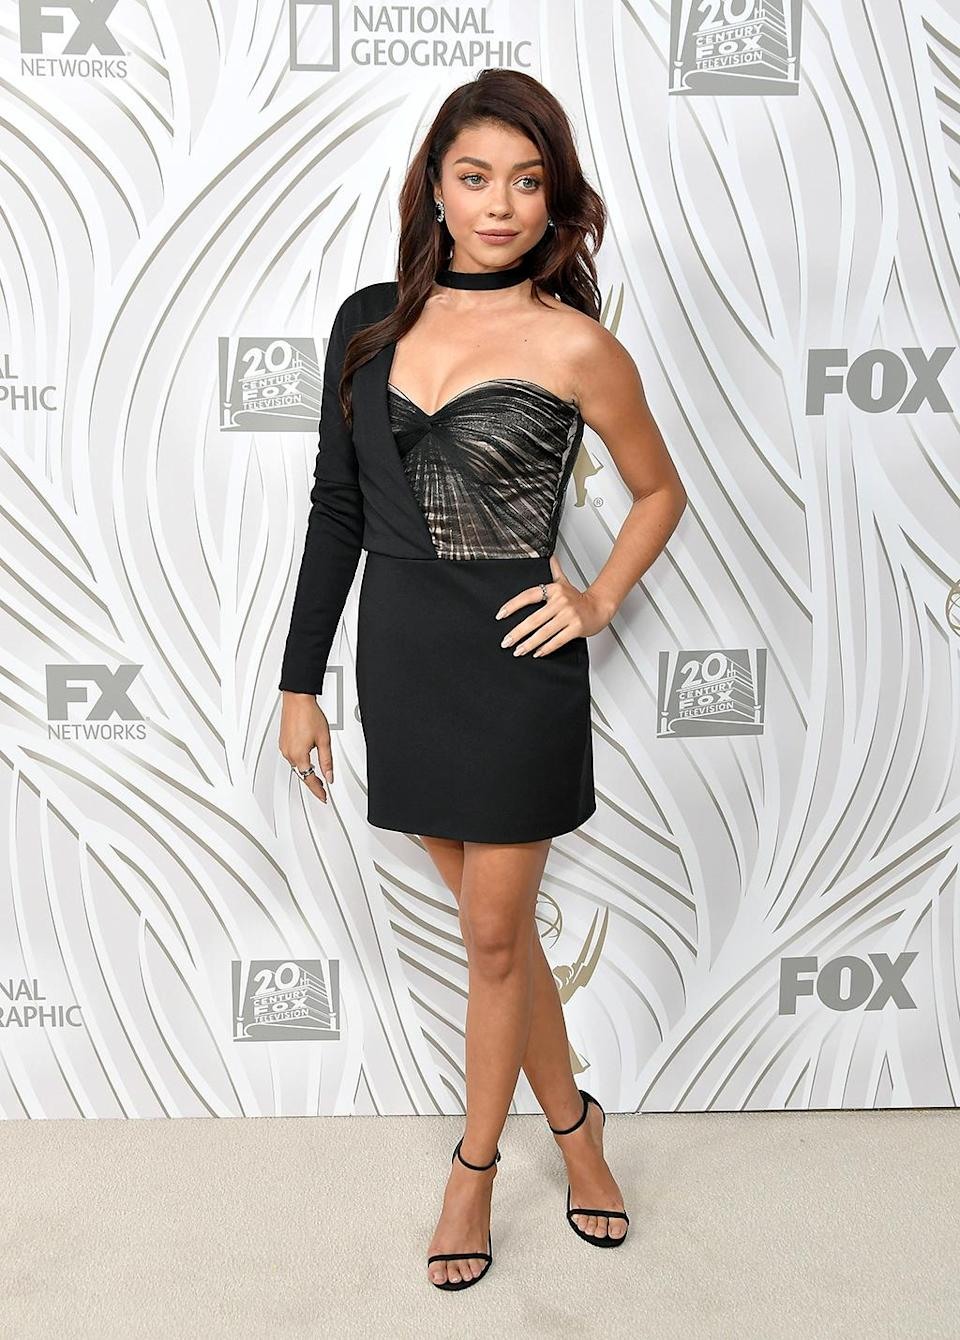 <p><em>Modern Family</em> star Sarah Hyland, making the scene solo after her breakup with Dominic Sherwood, attended the Fox Broadcasting Co., Twentieth Century Fox Television, FX, and <em>National Geographic</em> bash. (Photo: Neilson Barnard/Getty Images) </p>